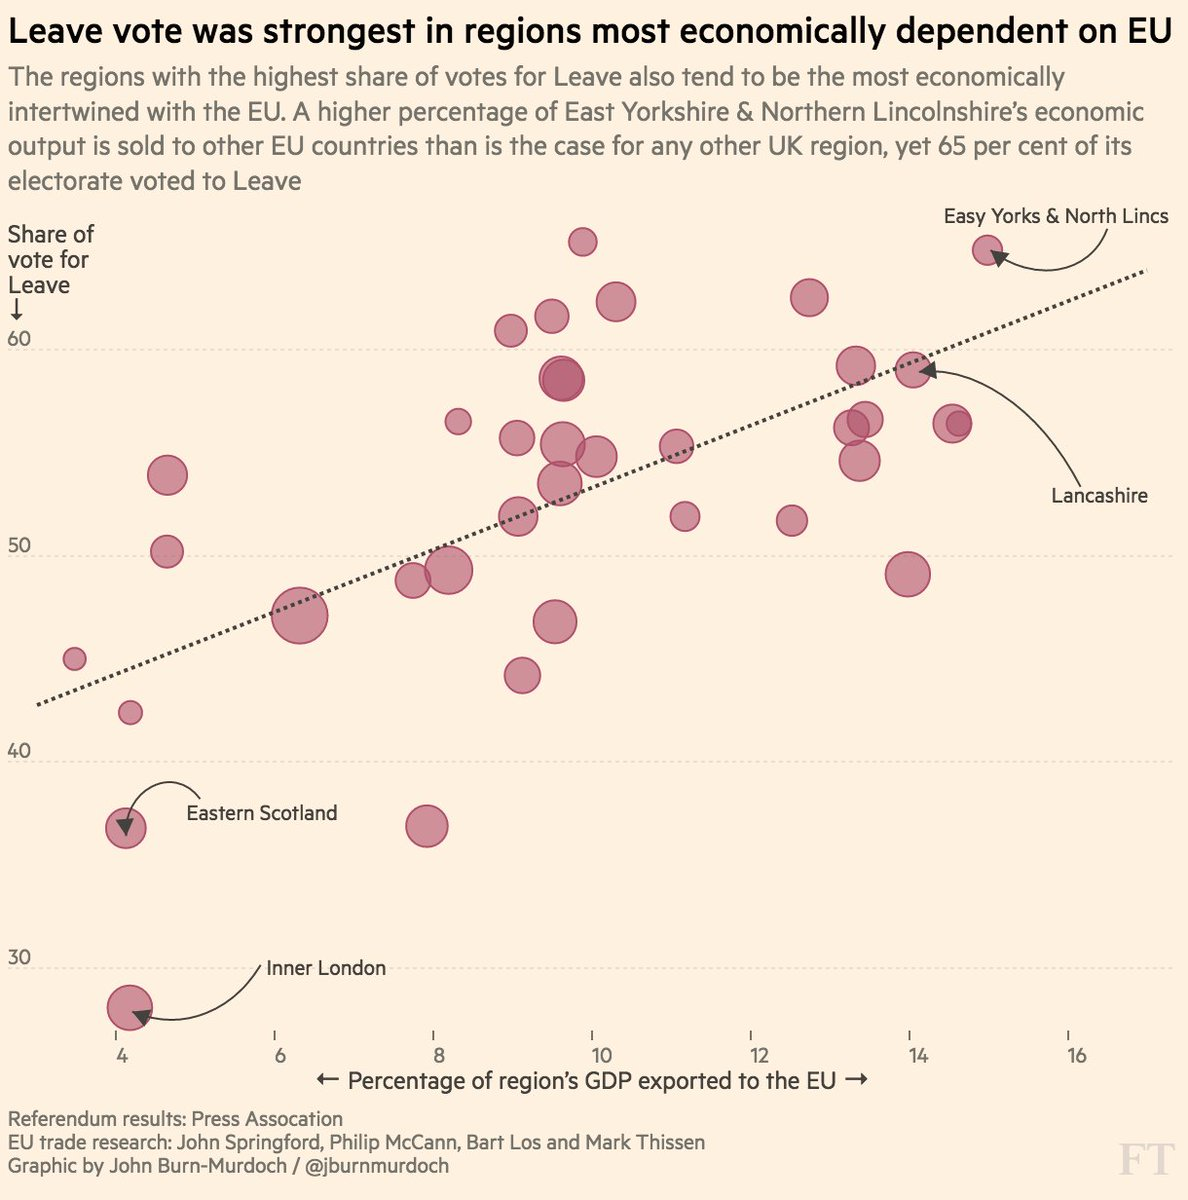 NEW: Regions with biggest Leave votes are the most economically dependent on EU 🤔 https://t.co/X5bfpkpUfE #Brexit https://t.co/frbQqiknwG